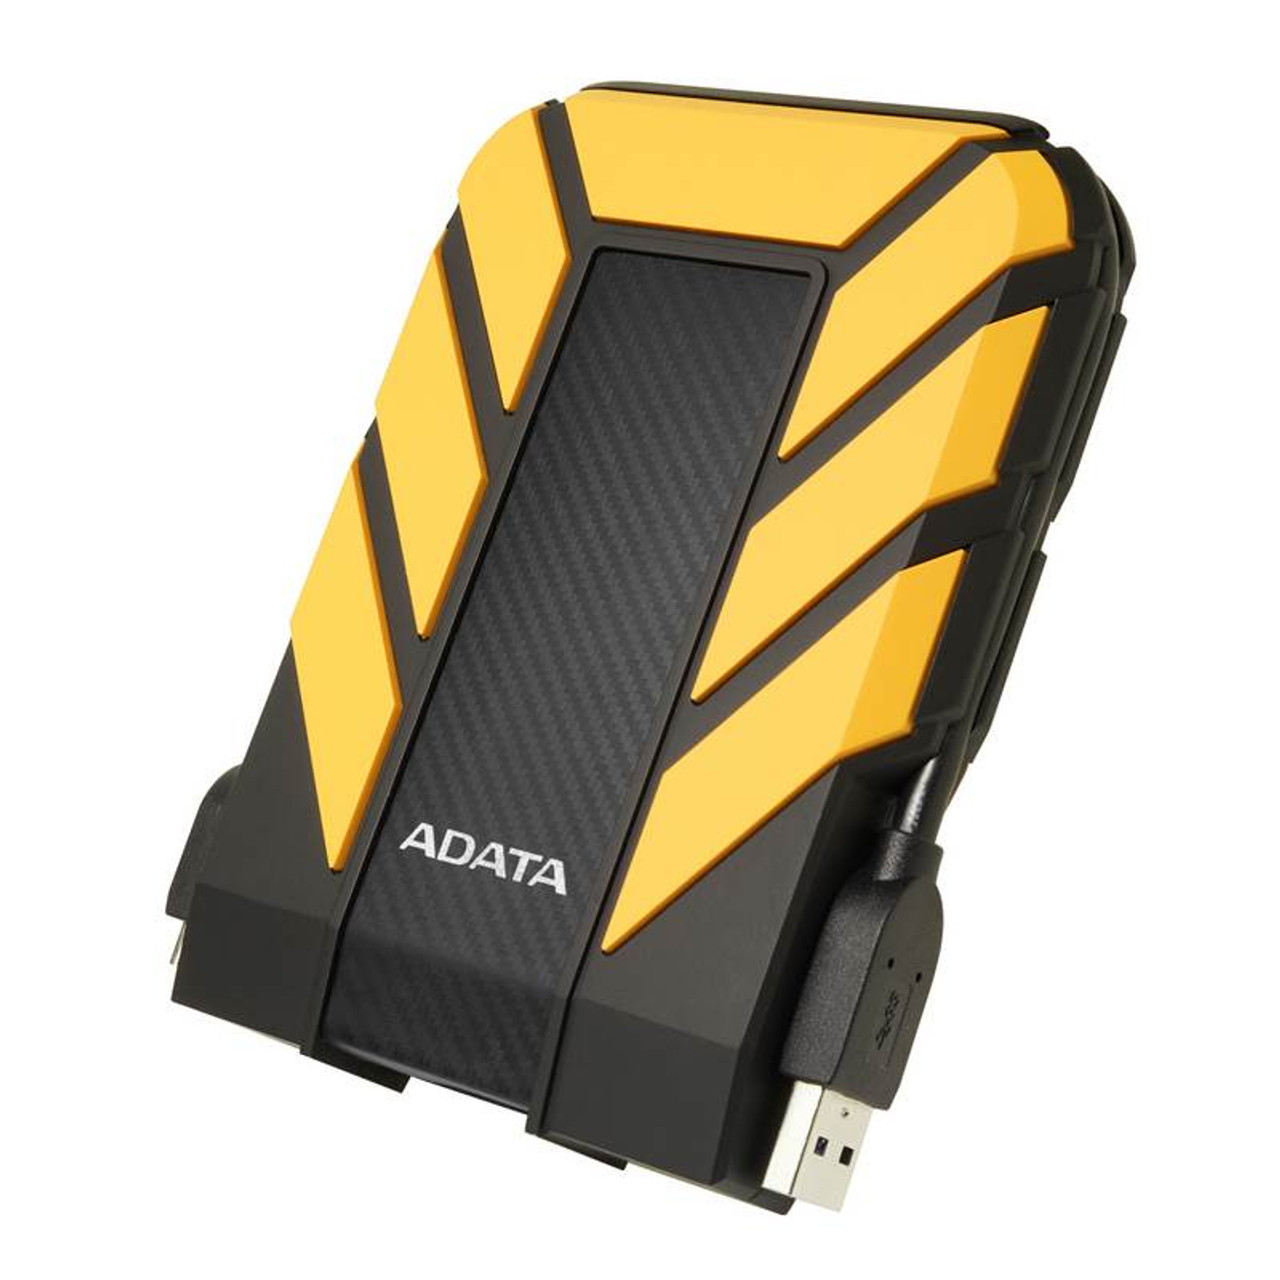 Image for Adata Rugged Pro HD710 1TB USB 3.0 Portable External Hard Drive - Yellow CX Computer Superstore